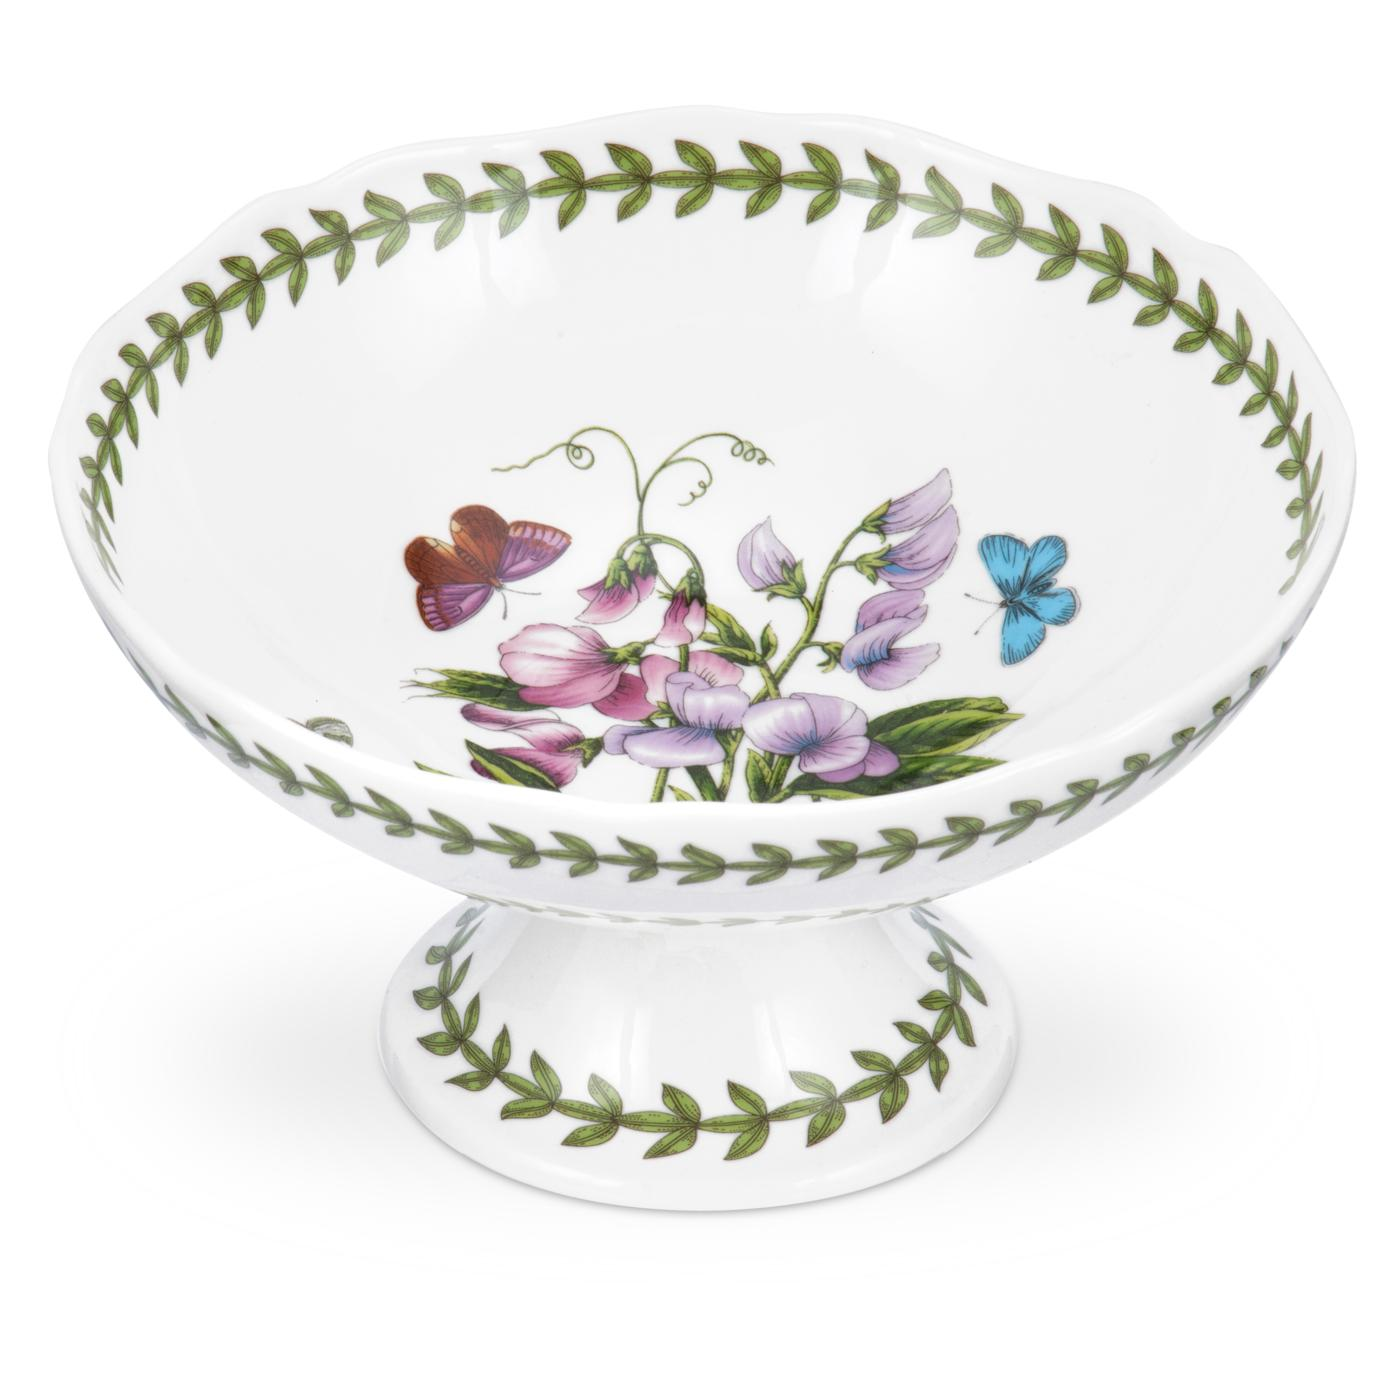 Portmeirion Botanic Garden Scalloped Edge Footed Bowl image number 0